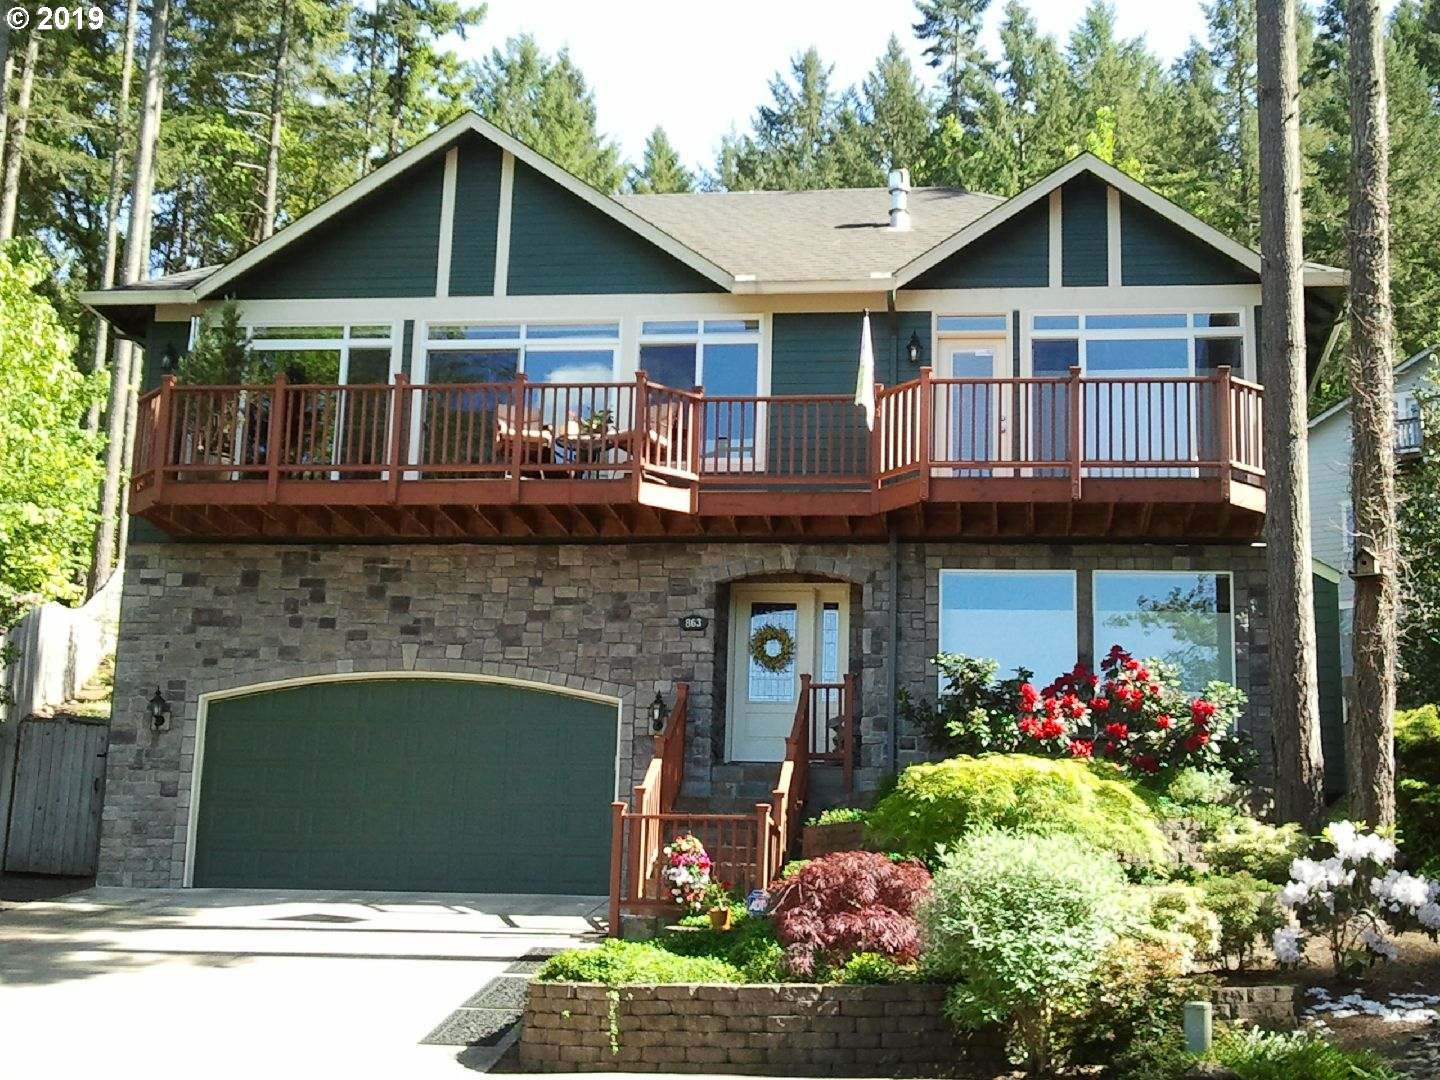 863 S 72ND PL, Springfield OR 97478